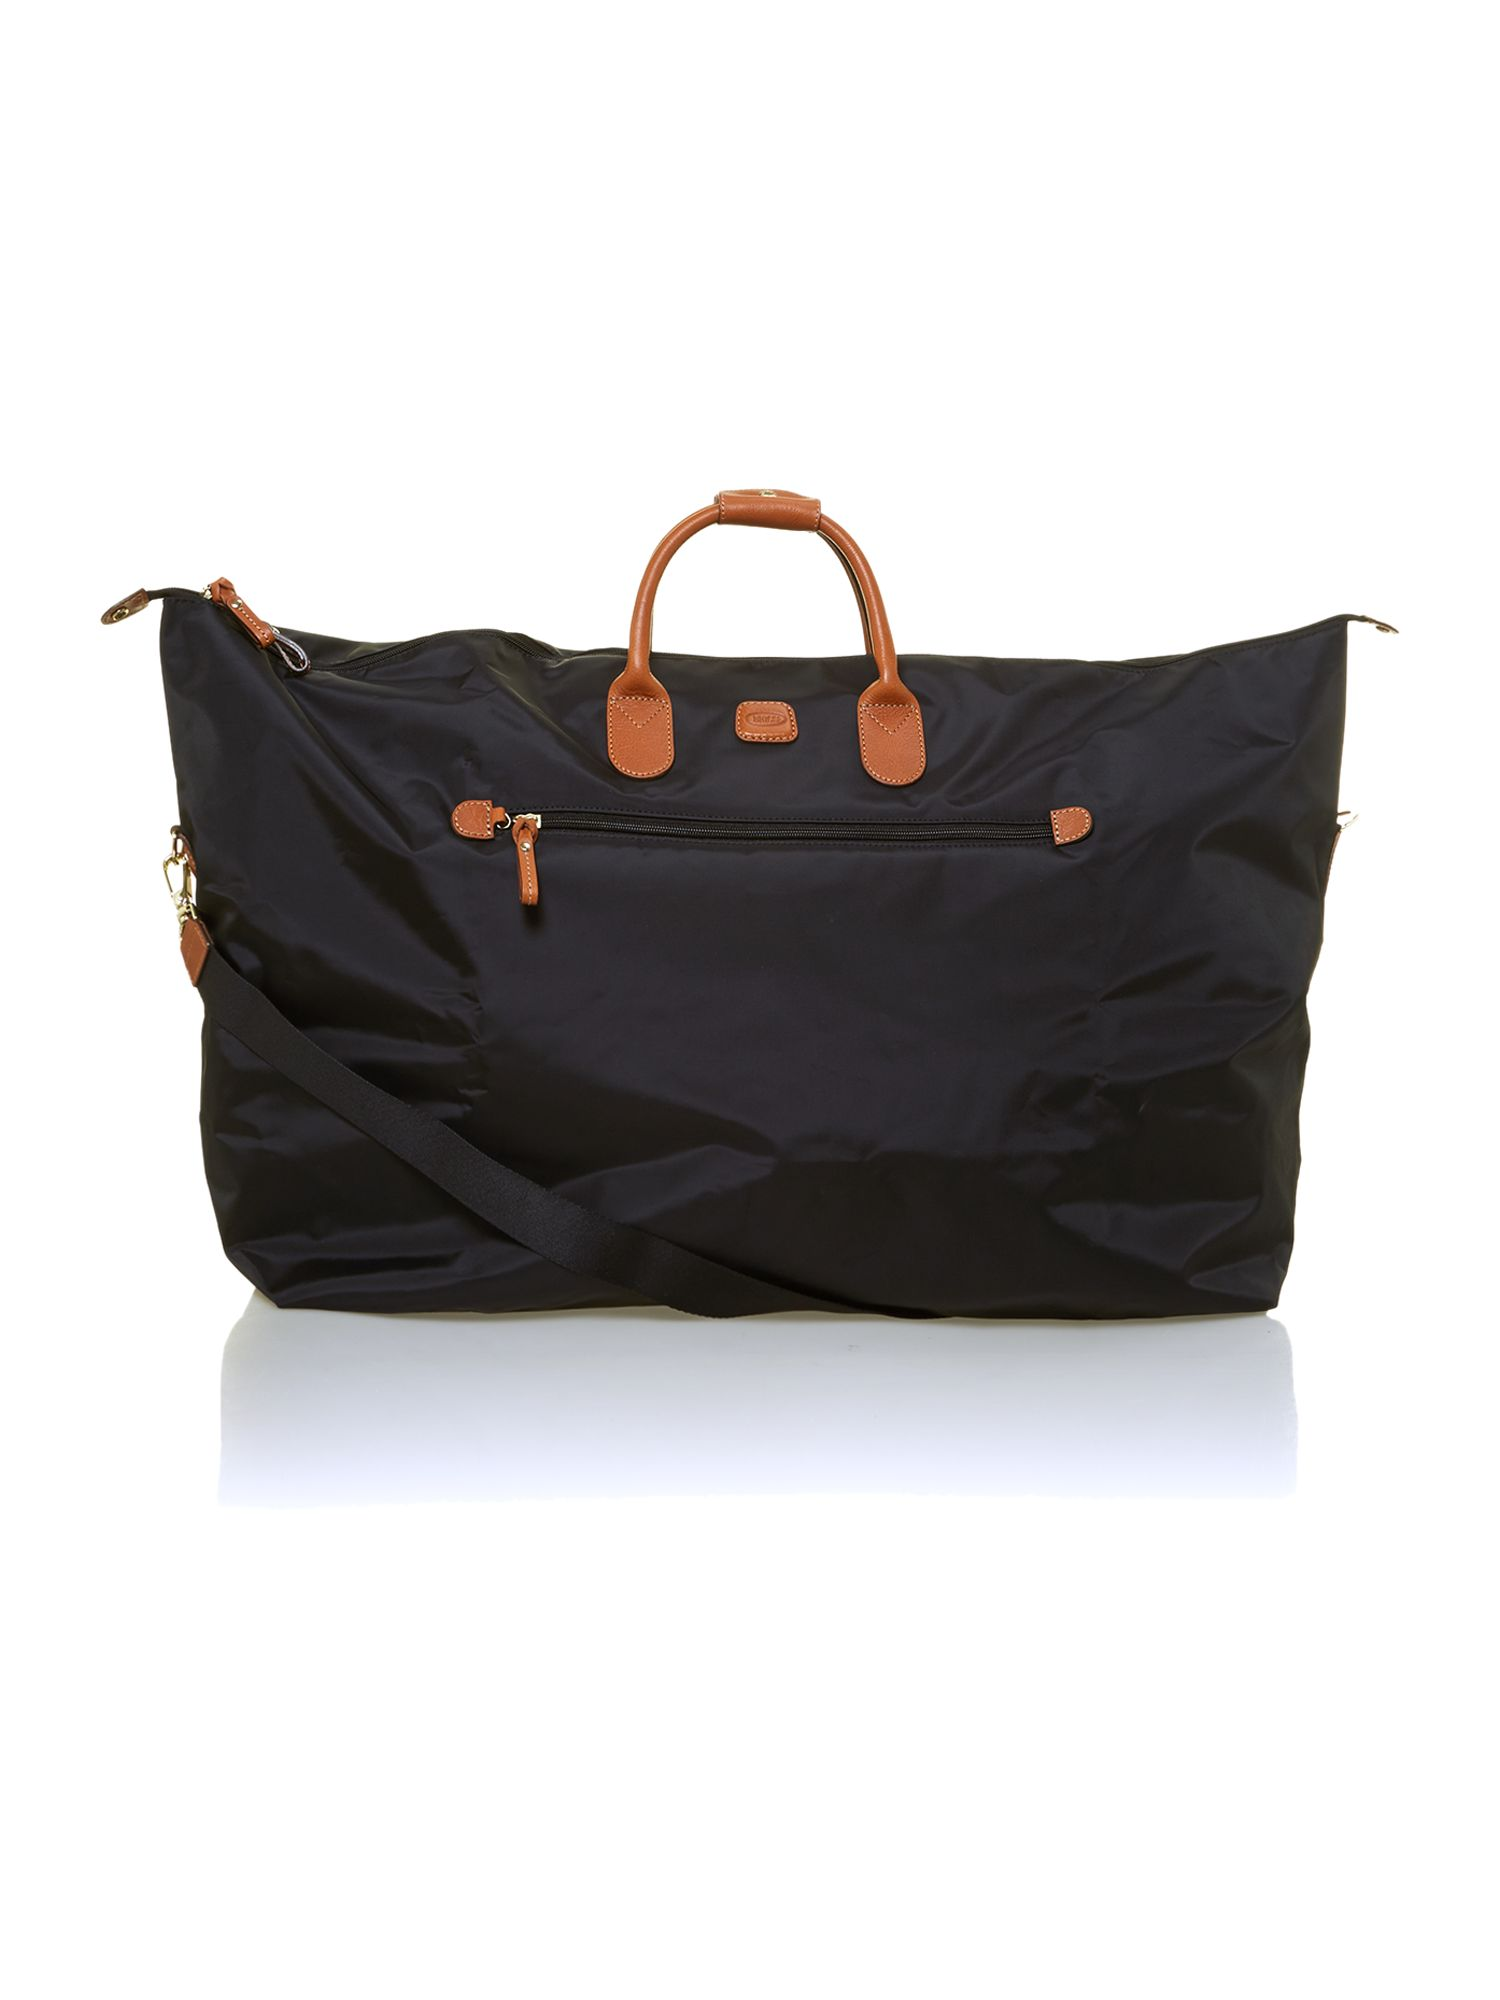 X Travel black large holdall